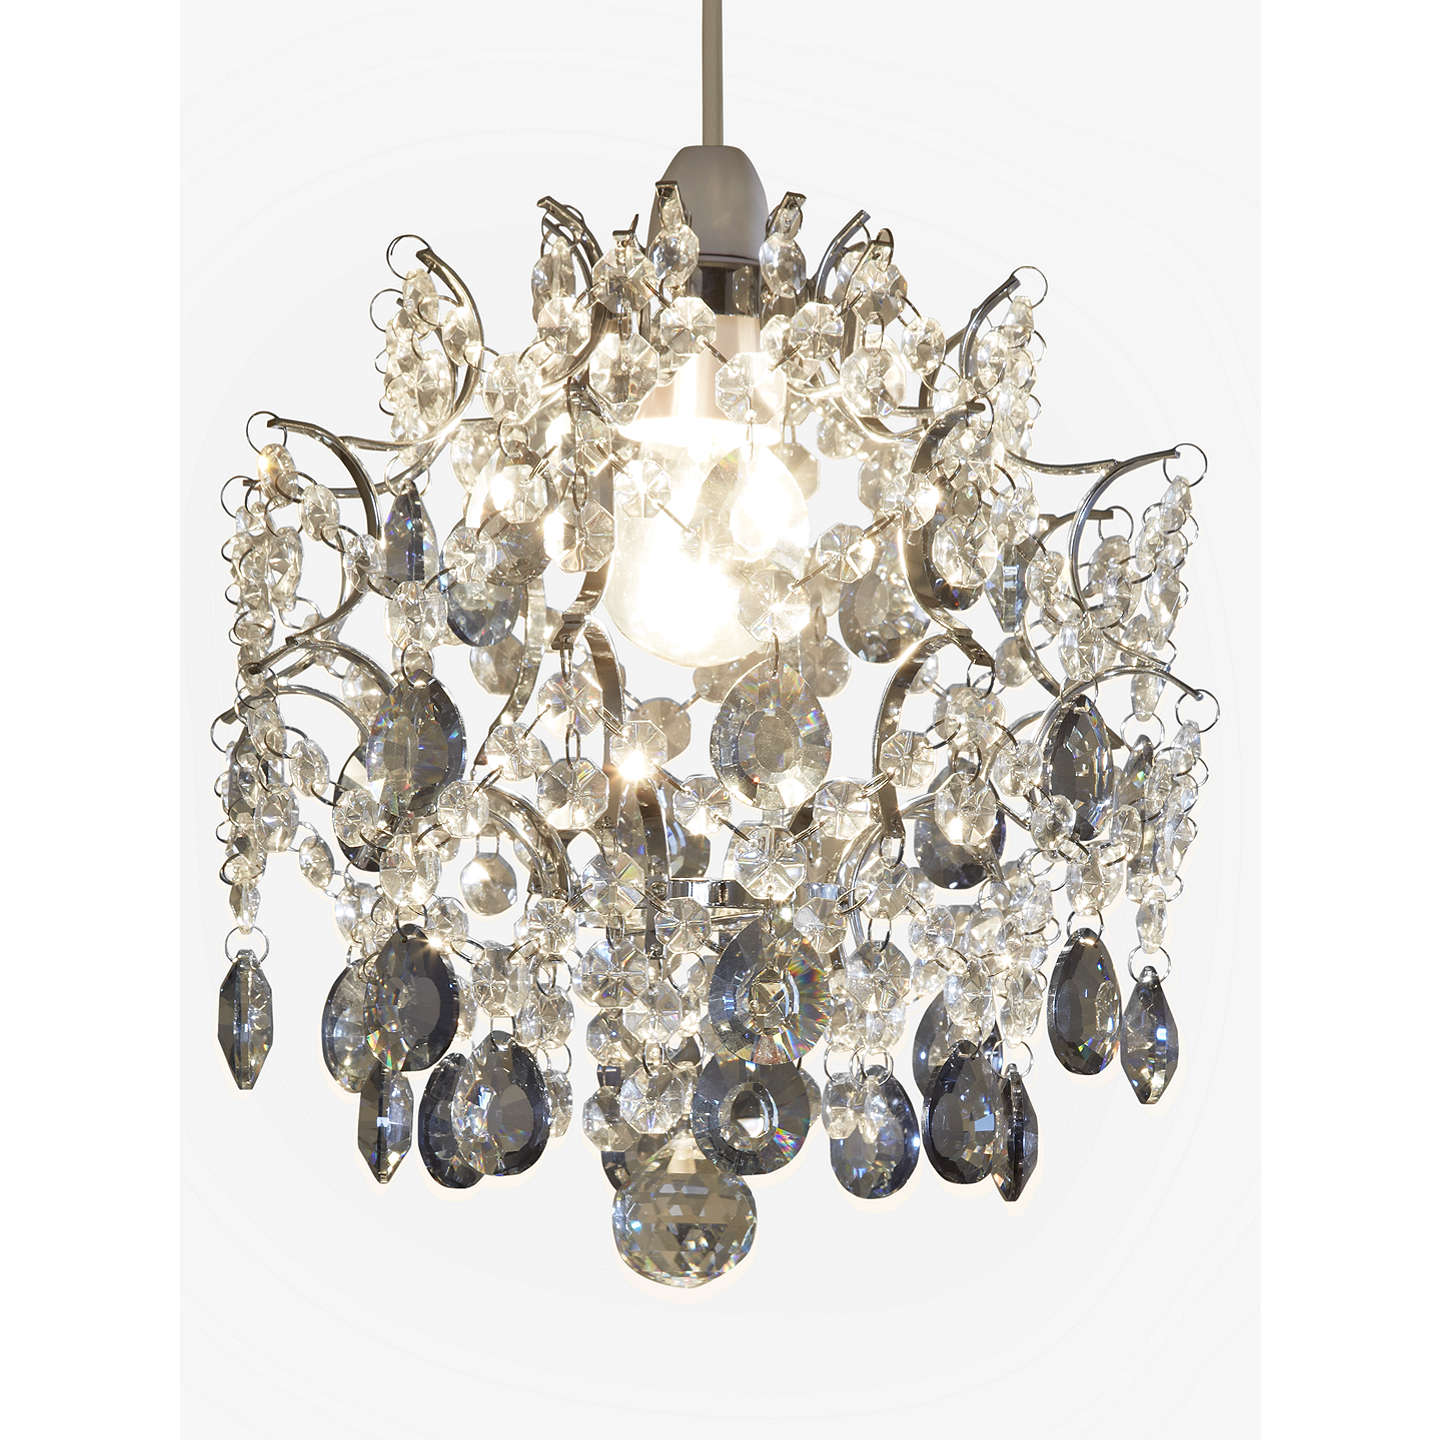 John lewis easy to fit baroque ceiling pendant shade at john lewis buyjohn lewis easy to fit baroque ceiling pendant shade online at johnlewis aloadofball Gallery